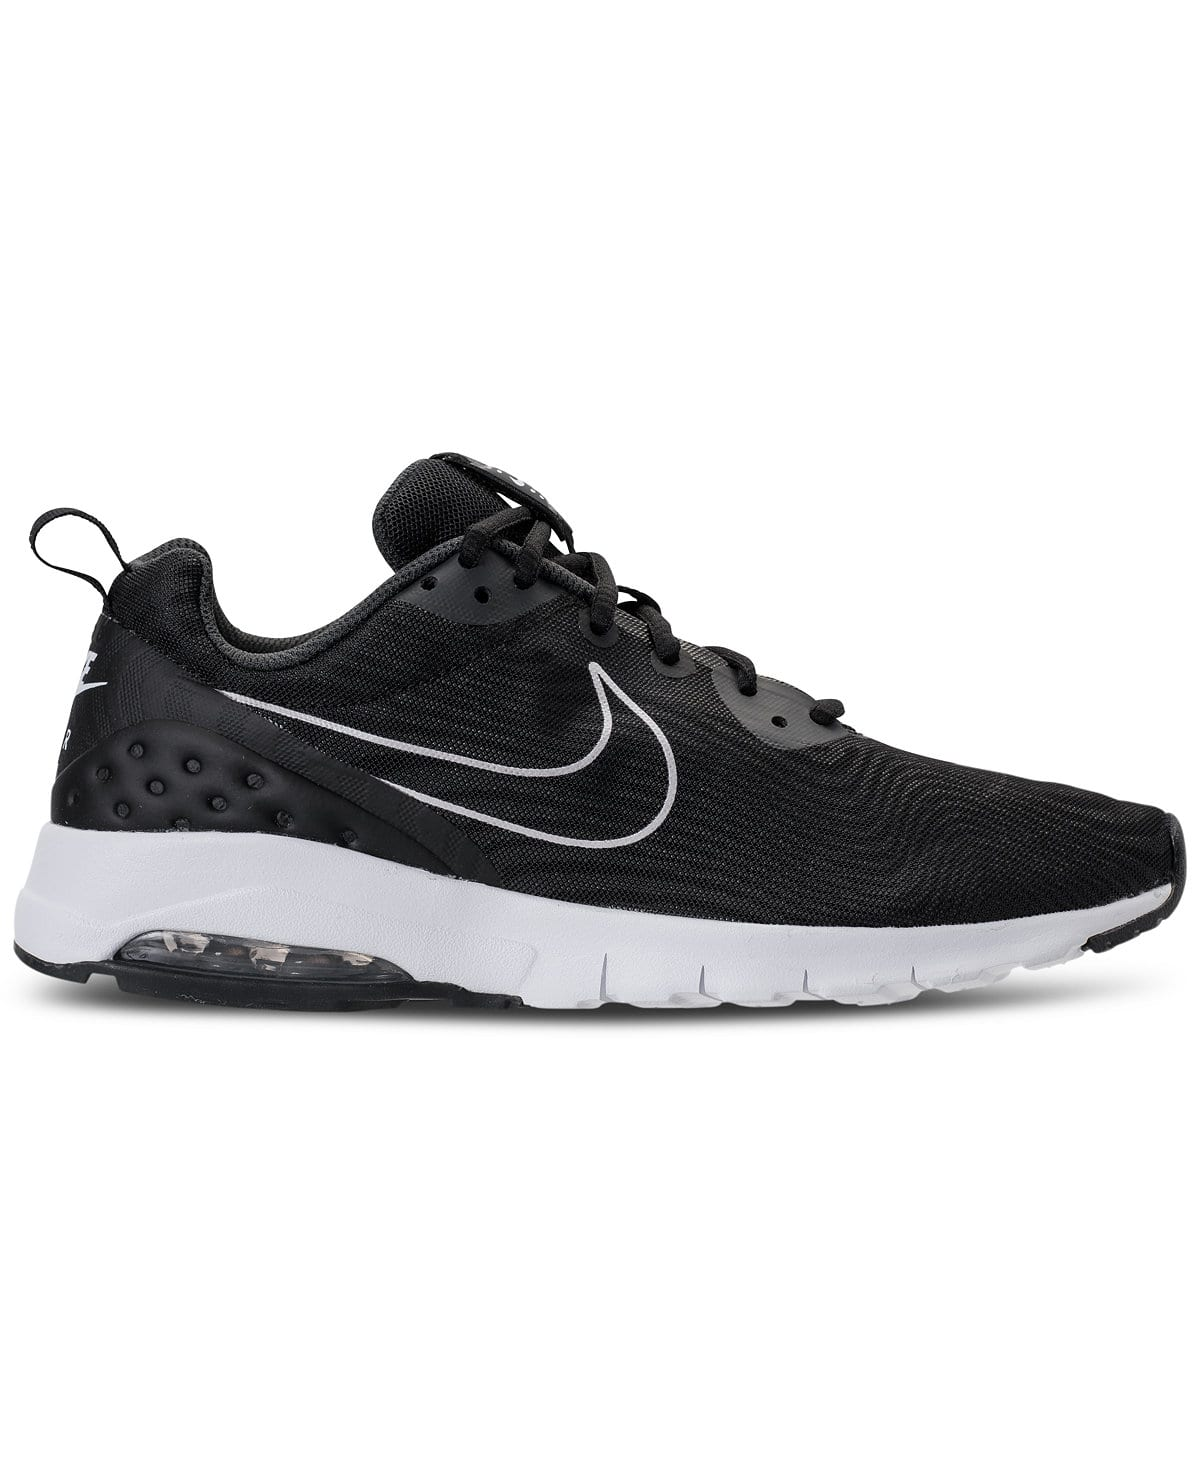 quality design 318f8 fc5a5 ... real nike mens air max motion lw premium running sneakers black 7b45c  fbc3a